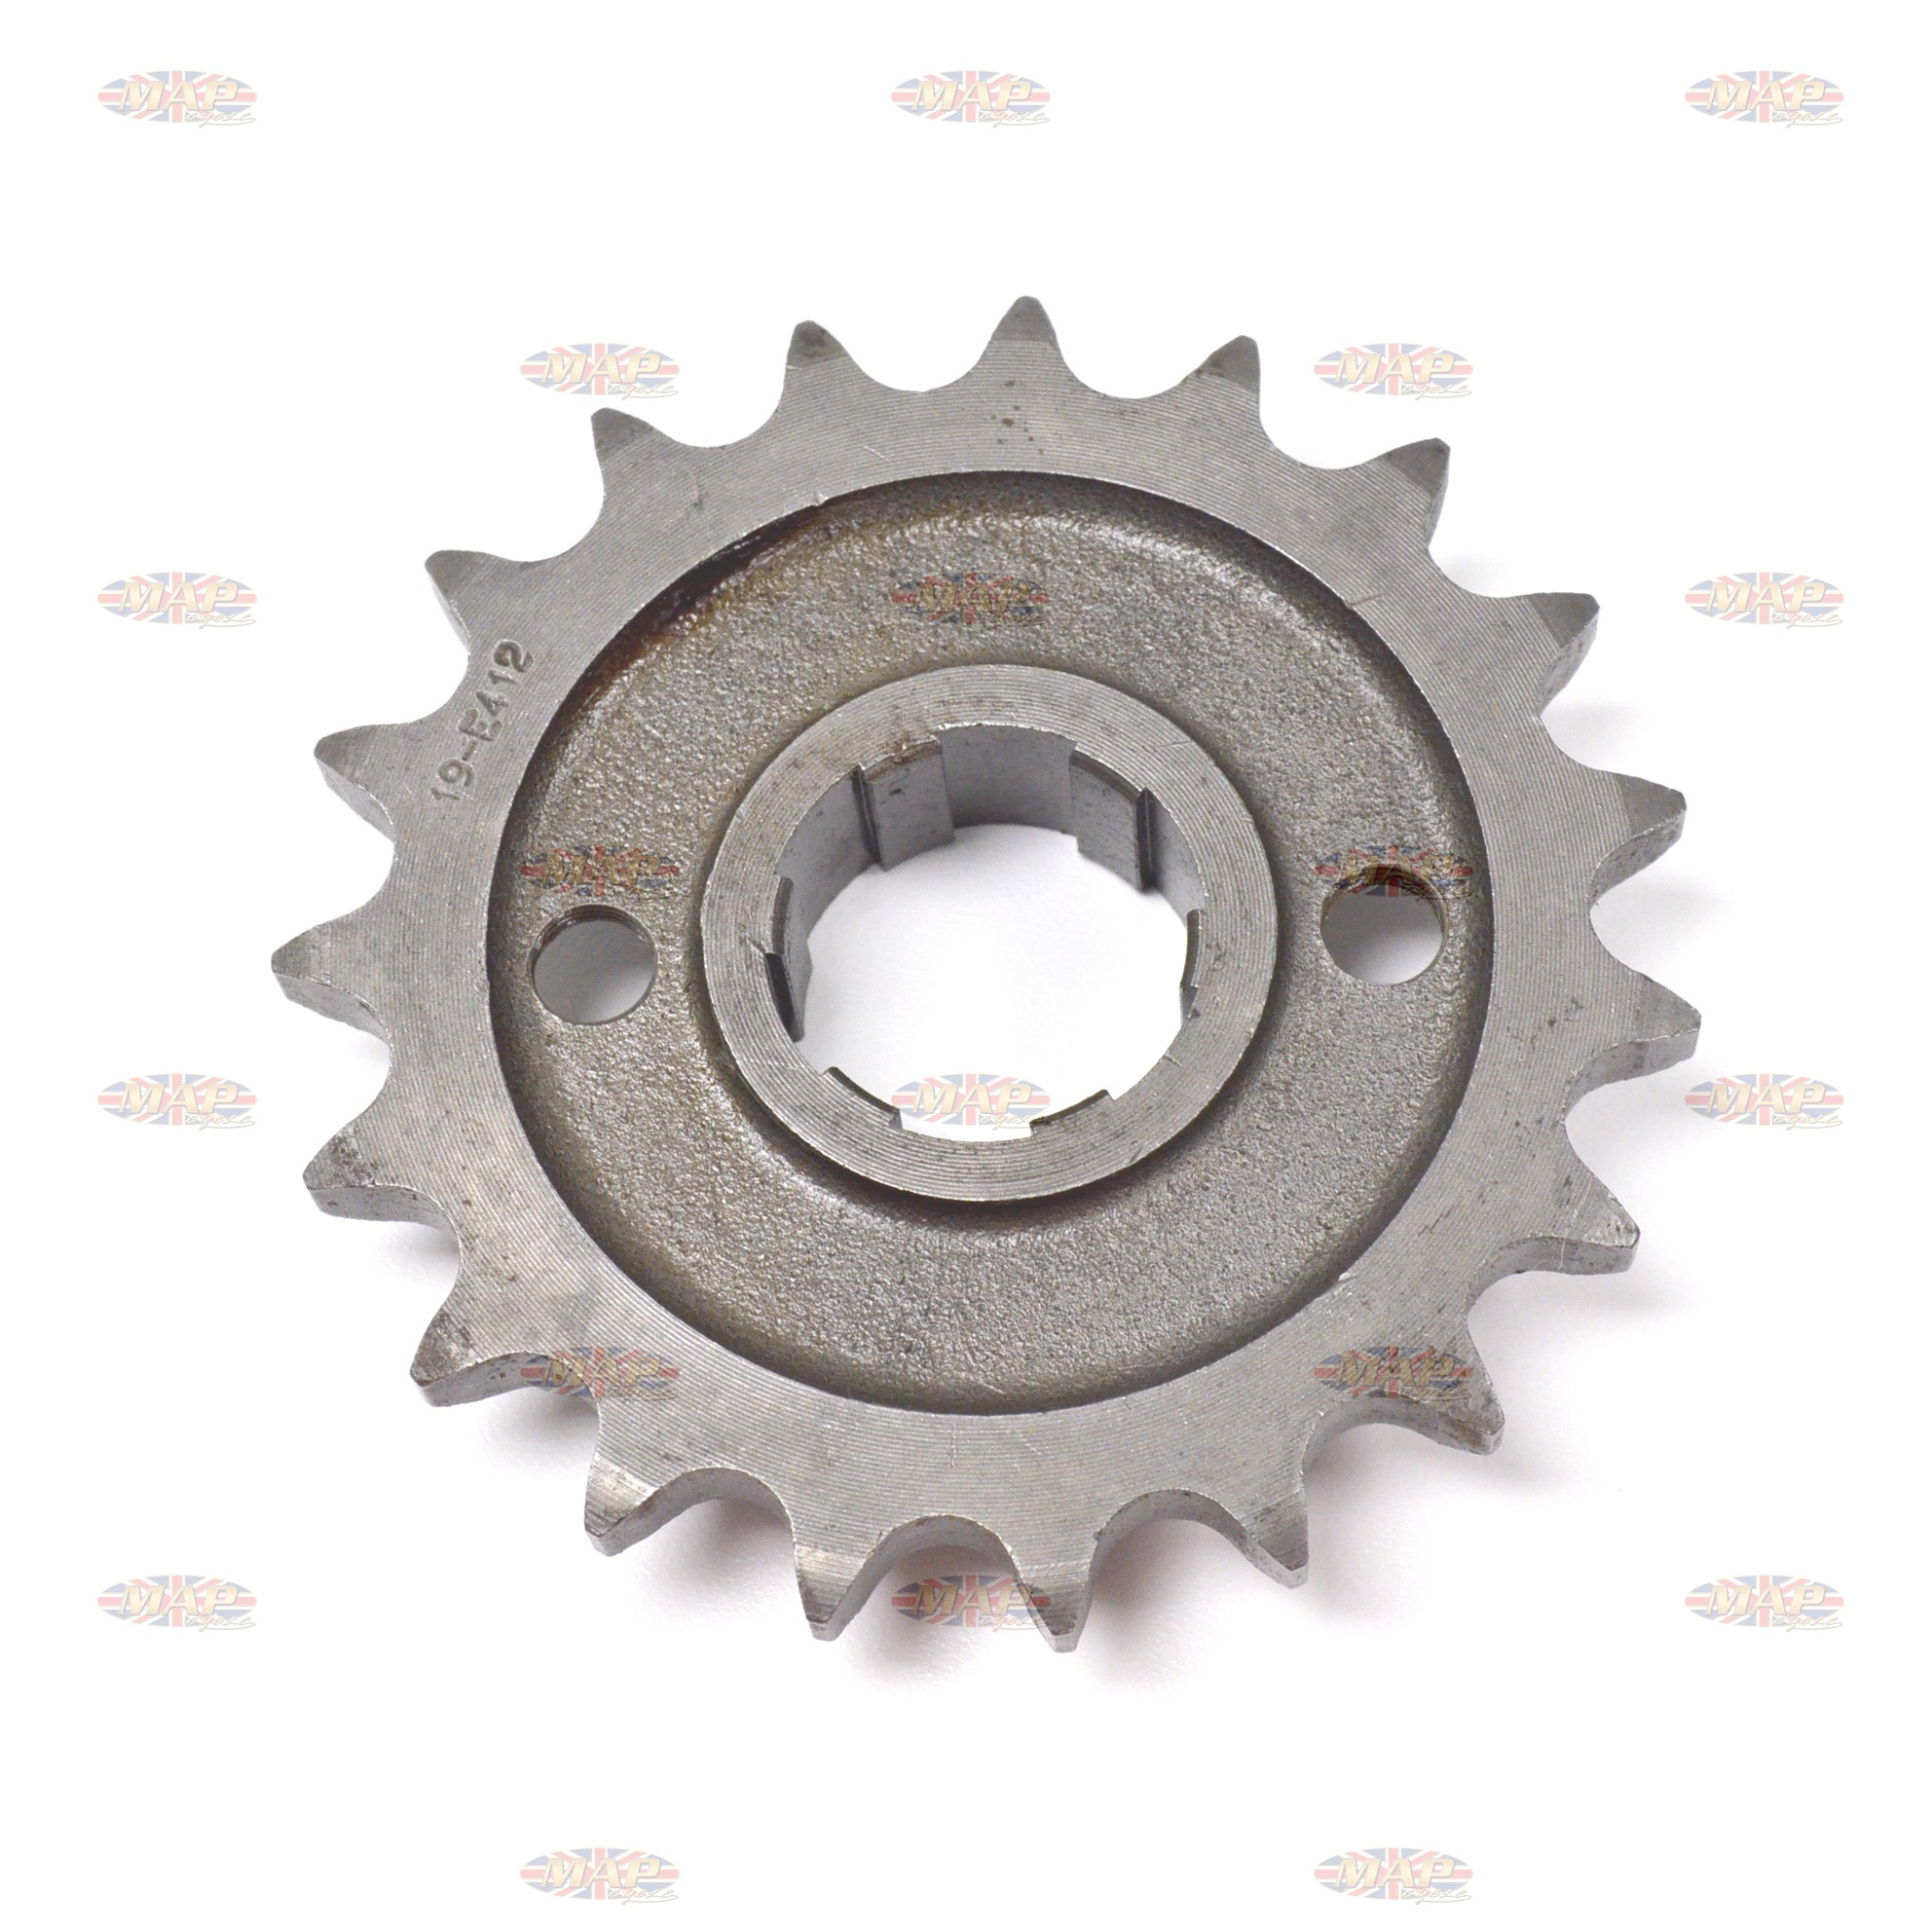 Triumph T120, T110T, 6T, TR6, UK-Made, Countershaft Sprocket 57-1715